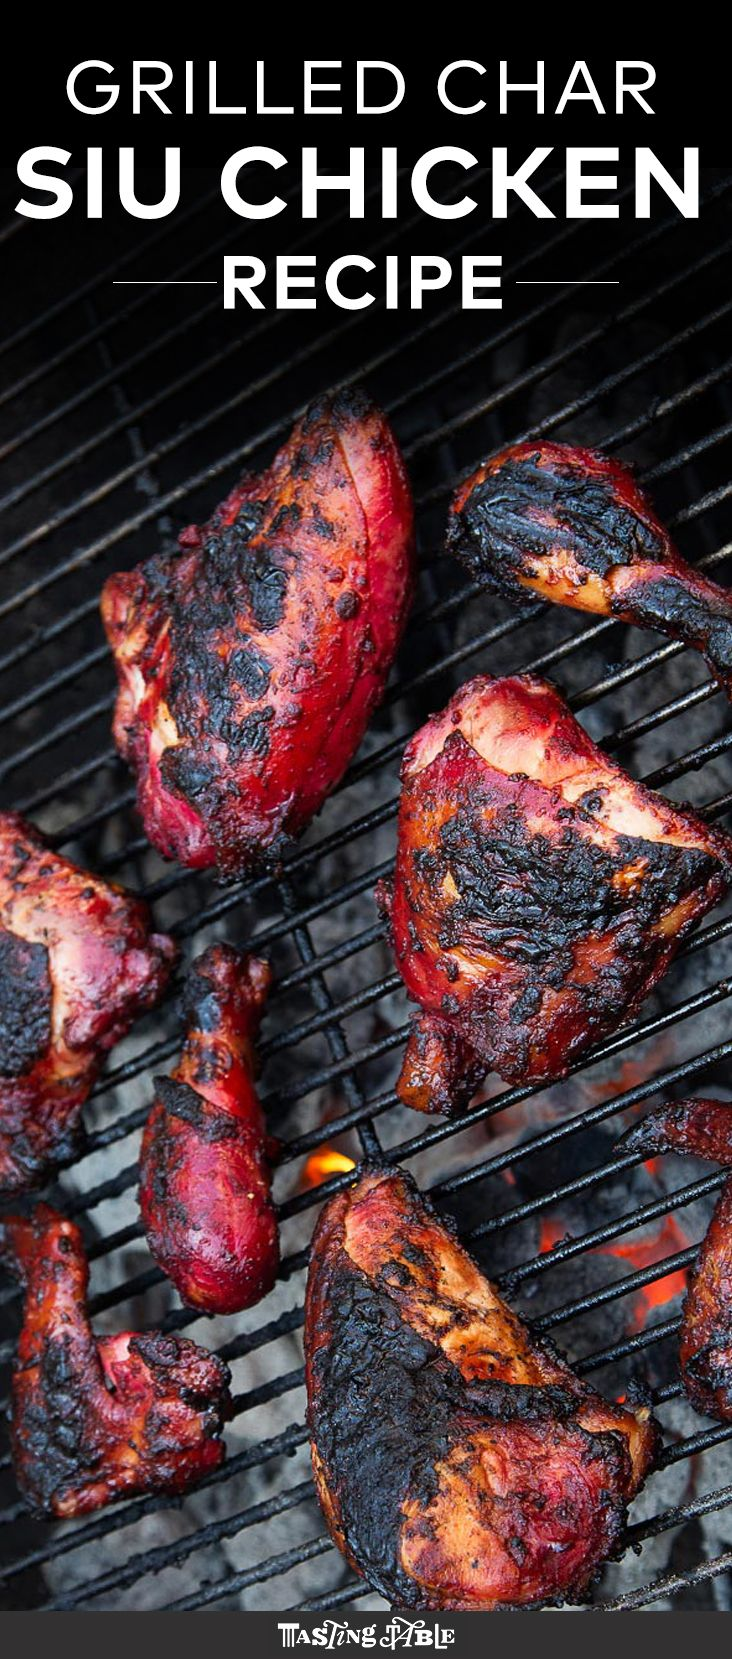 The Chinese take-out staple gets a fresh spin on the grill. Try this grilled char siu chicken recipe.